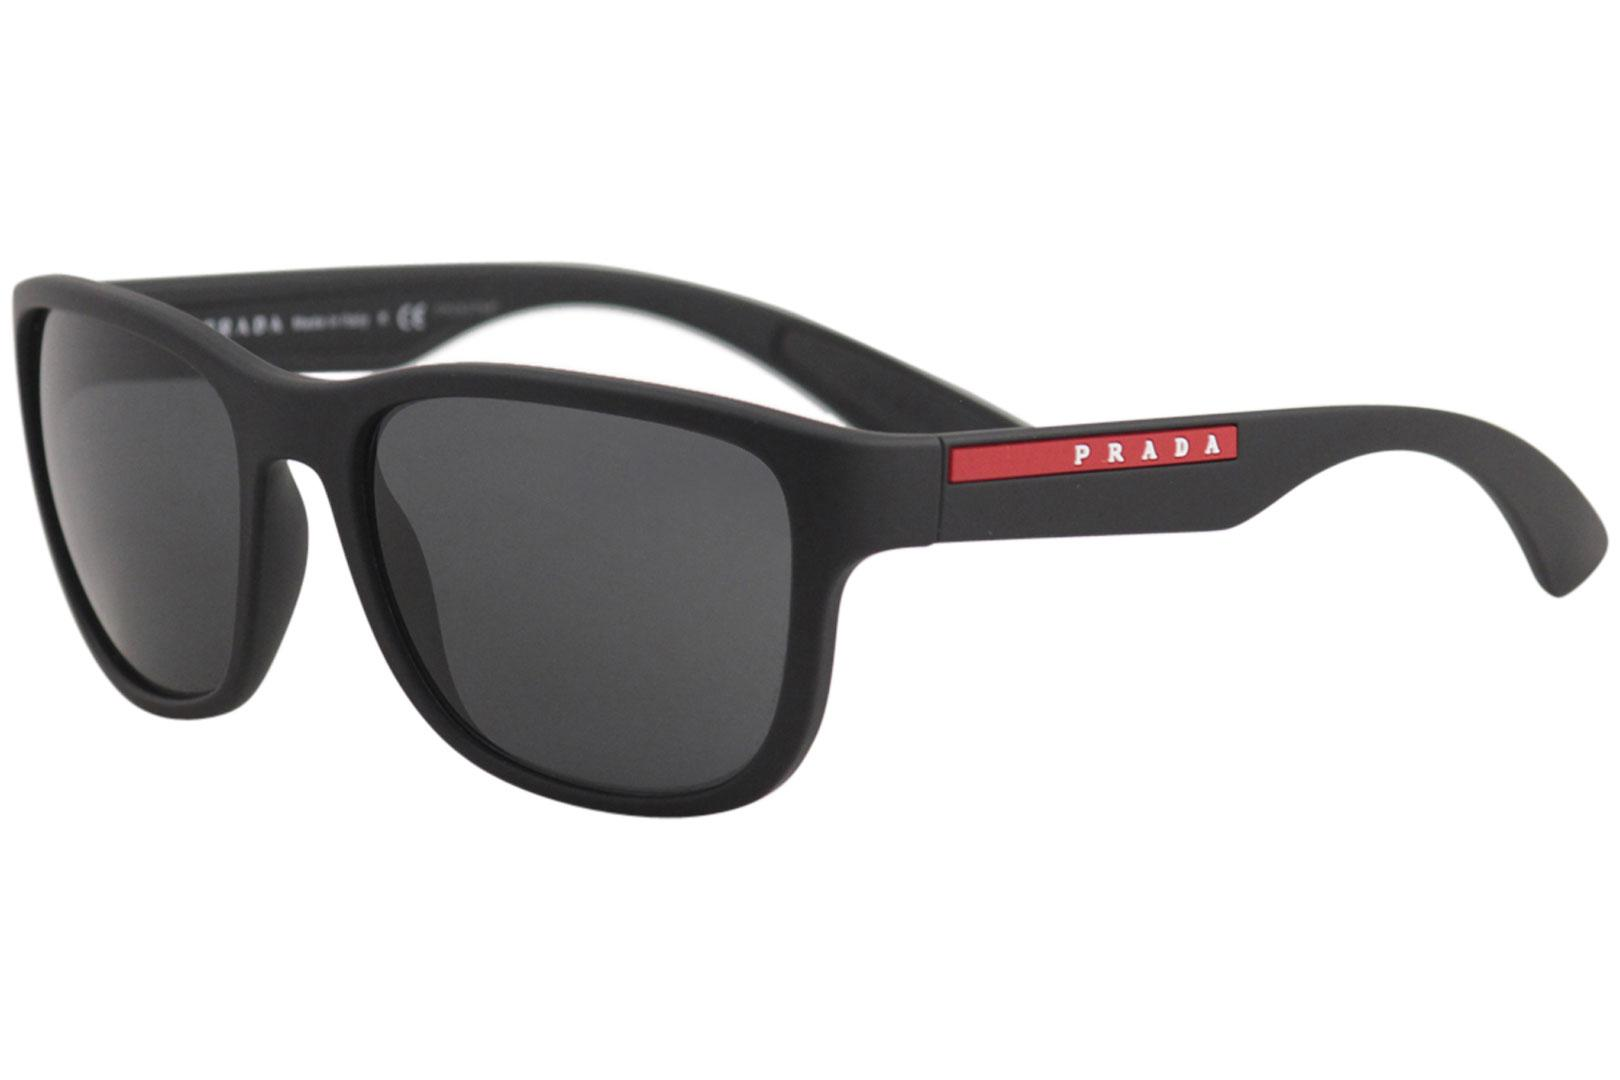 69ee5b330ab32 Prada Men s Linea Rossa SPS01U SPS 01 U Fashion Square Sunglasses